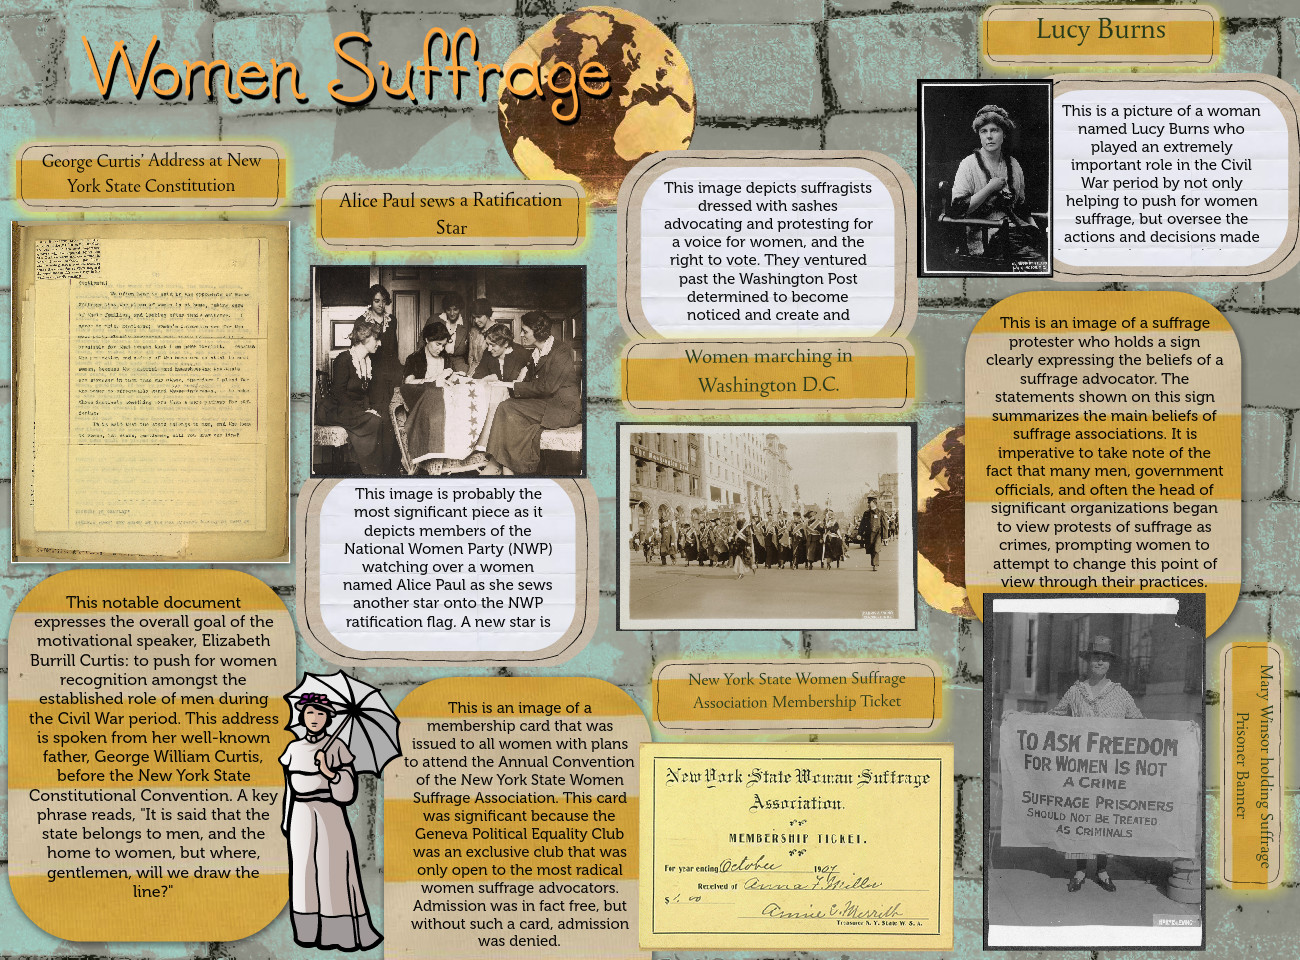 Women Suffrage - Online Museum Exhibit